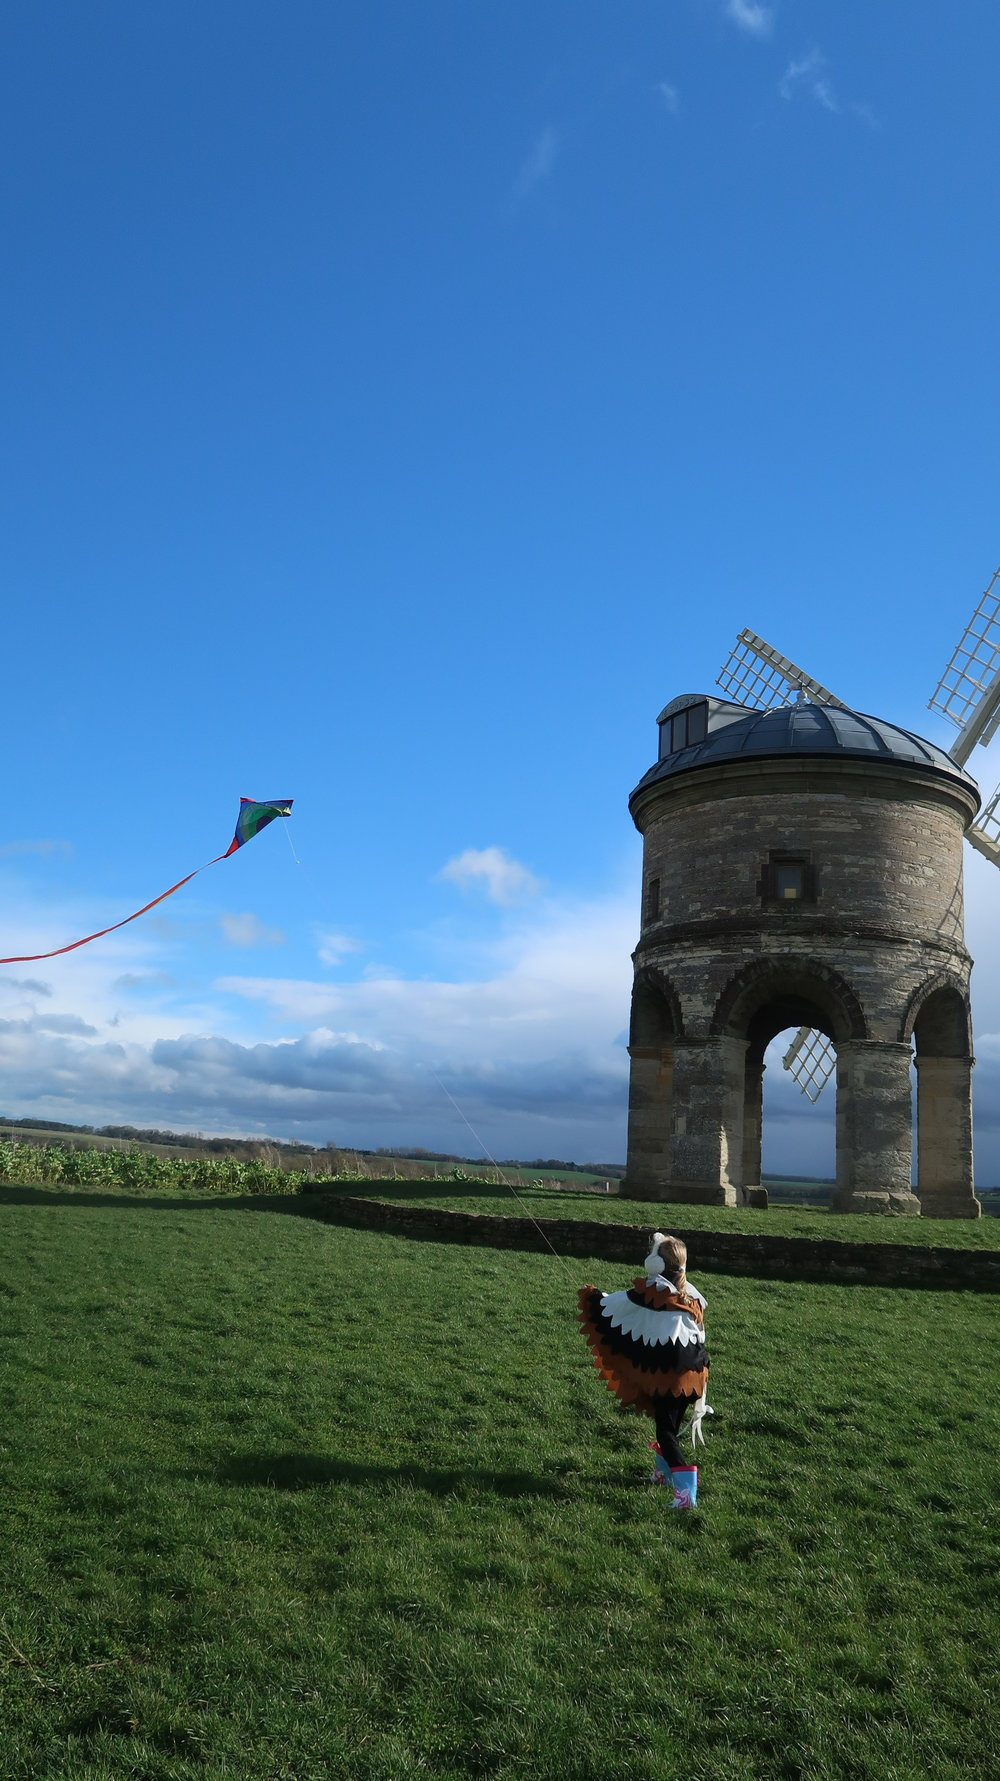 kite flying at Chesterton Windmill Warwickshire